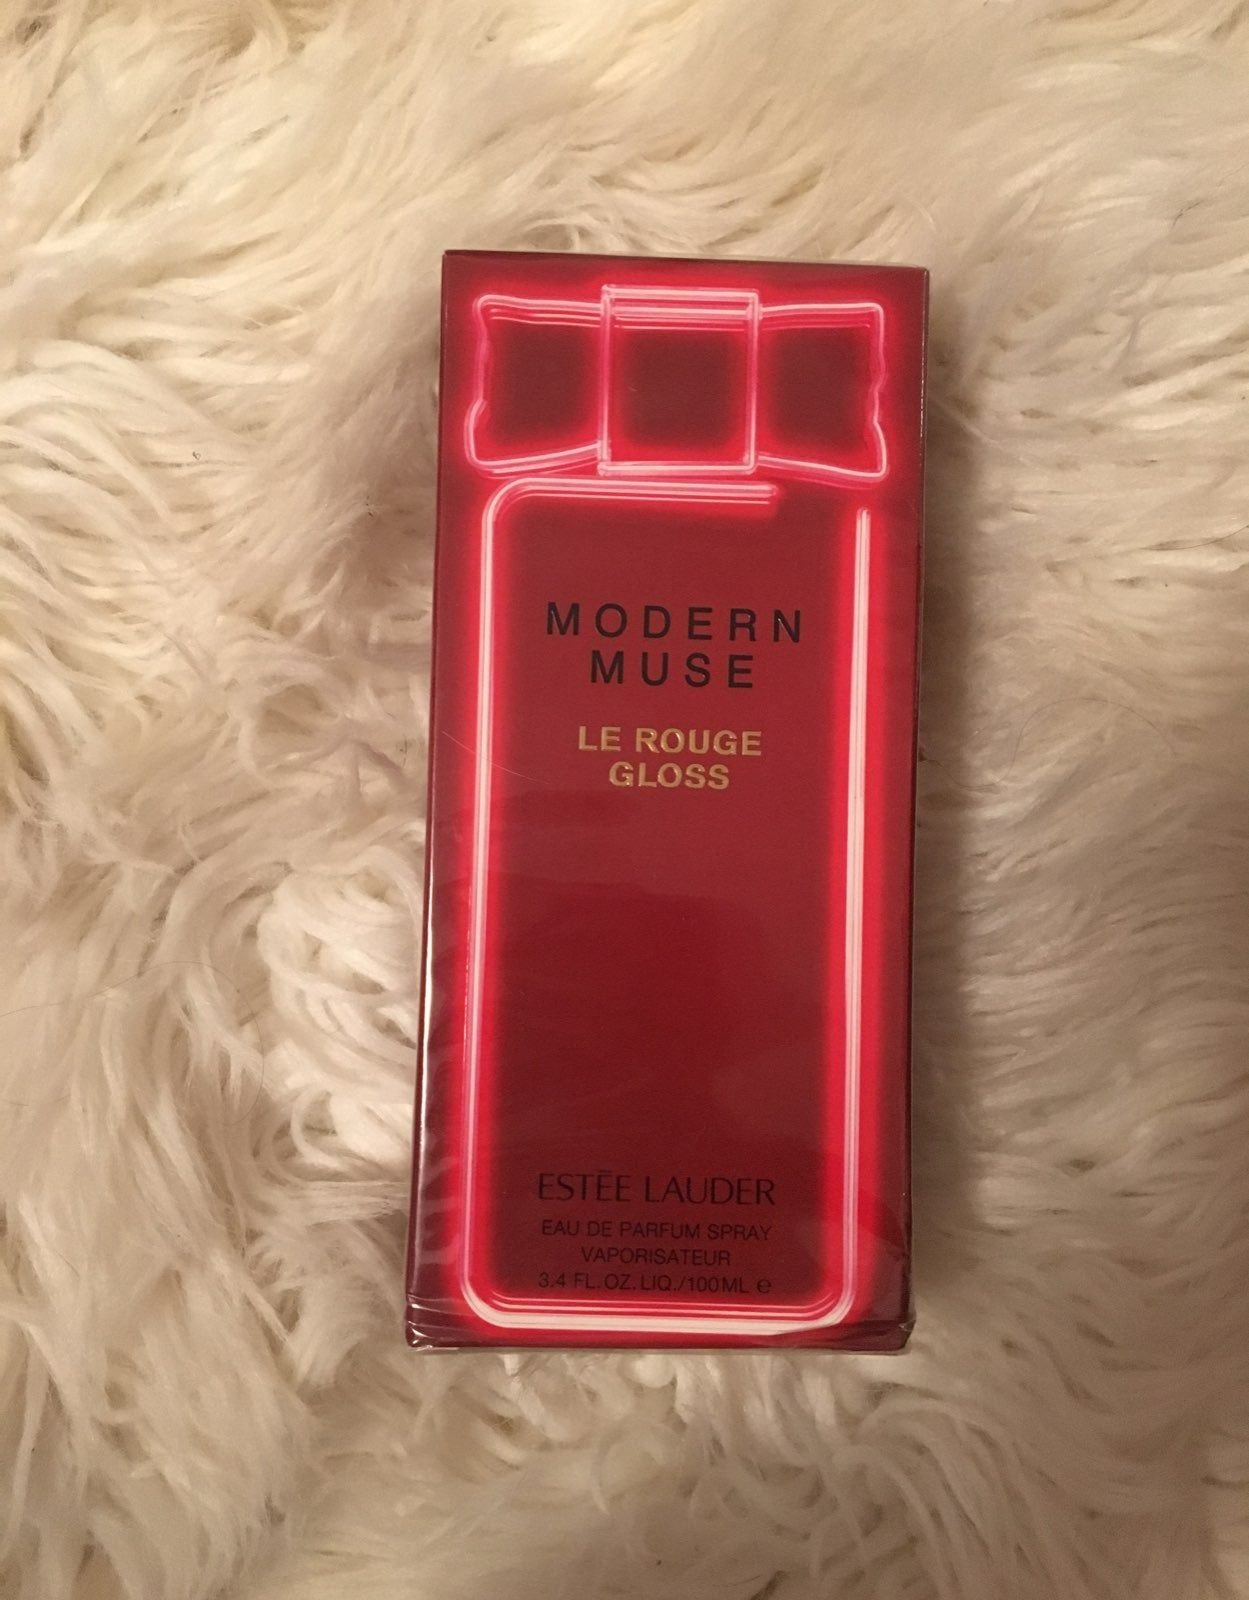 New Modern Muse 3 4 Fl Oz Le Rouge Gloss Eau De Parfum Smells Of Rich Roses Beautiful Sweet Scent Estee Lauder Modern Muse Modern Muse Sweet Scents